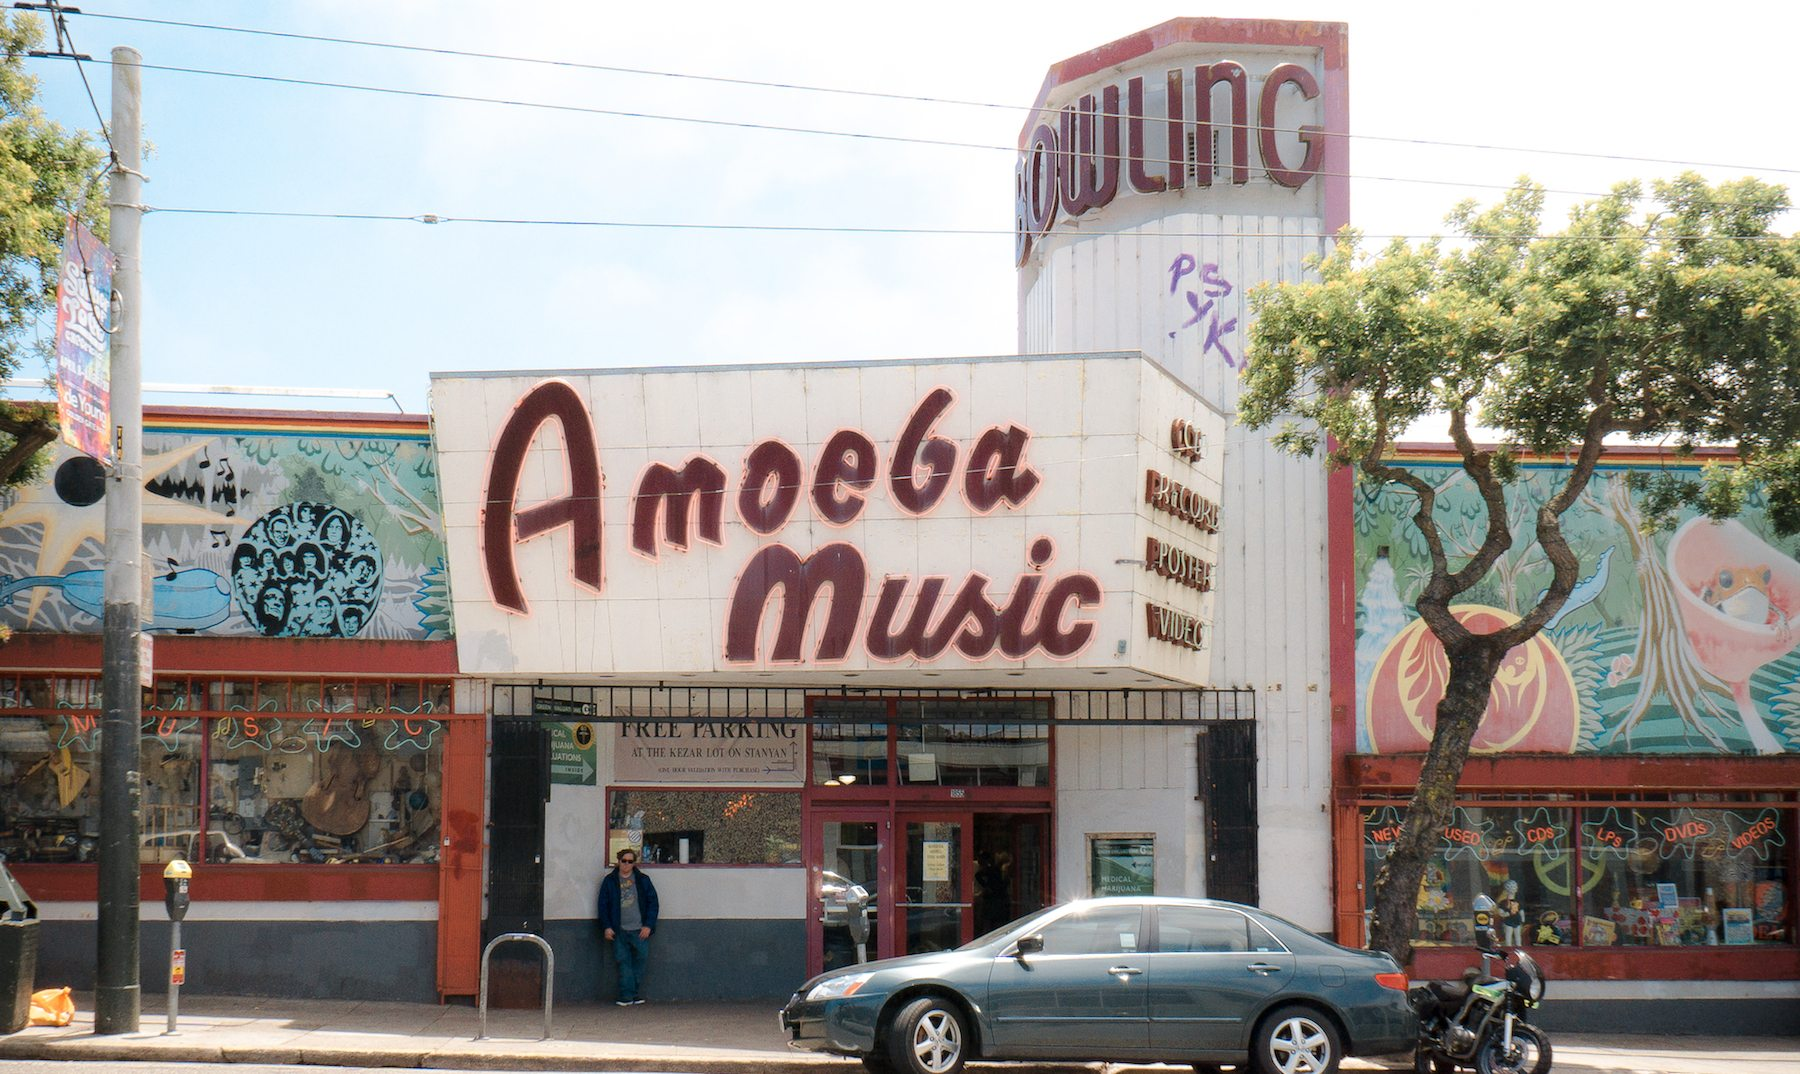 Amoeba Music. Photo: Justin Wong, 49miles.com.